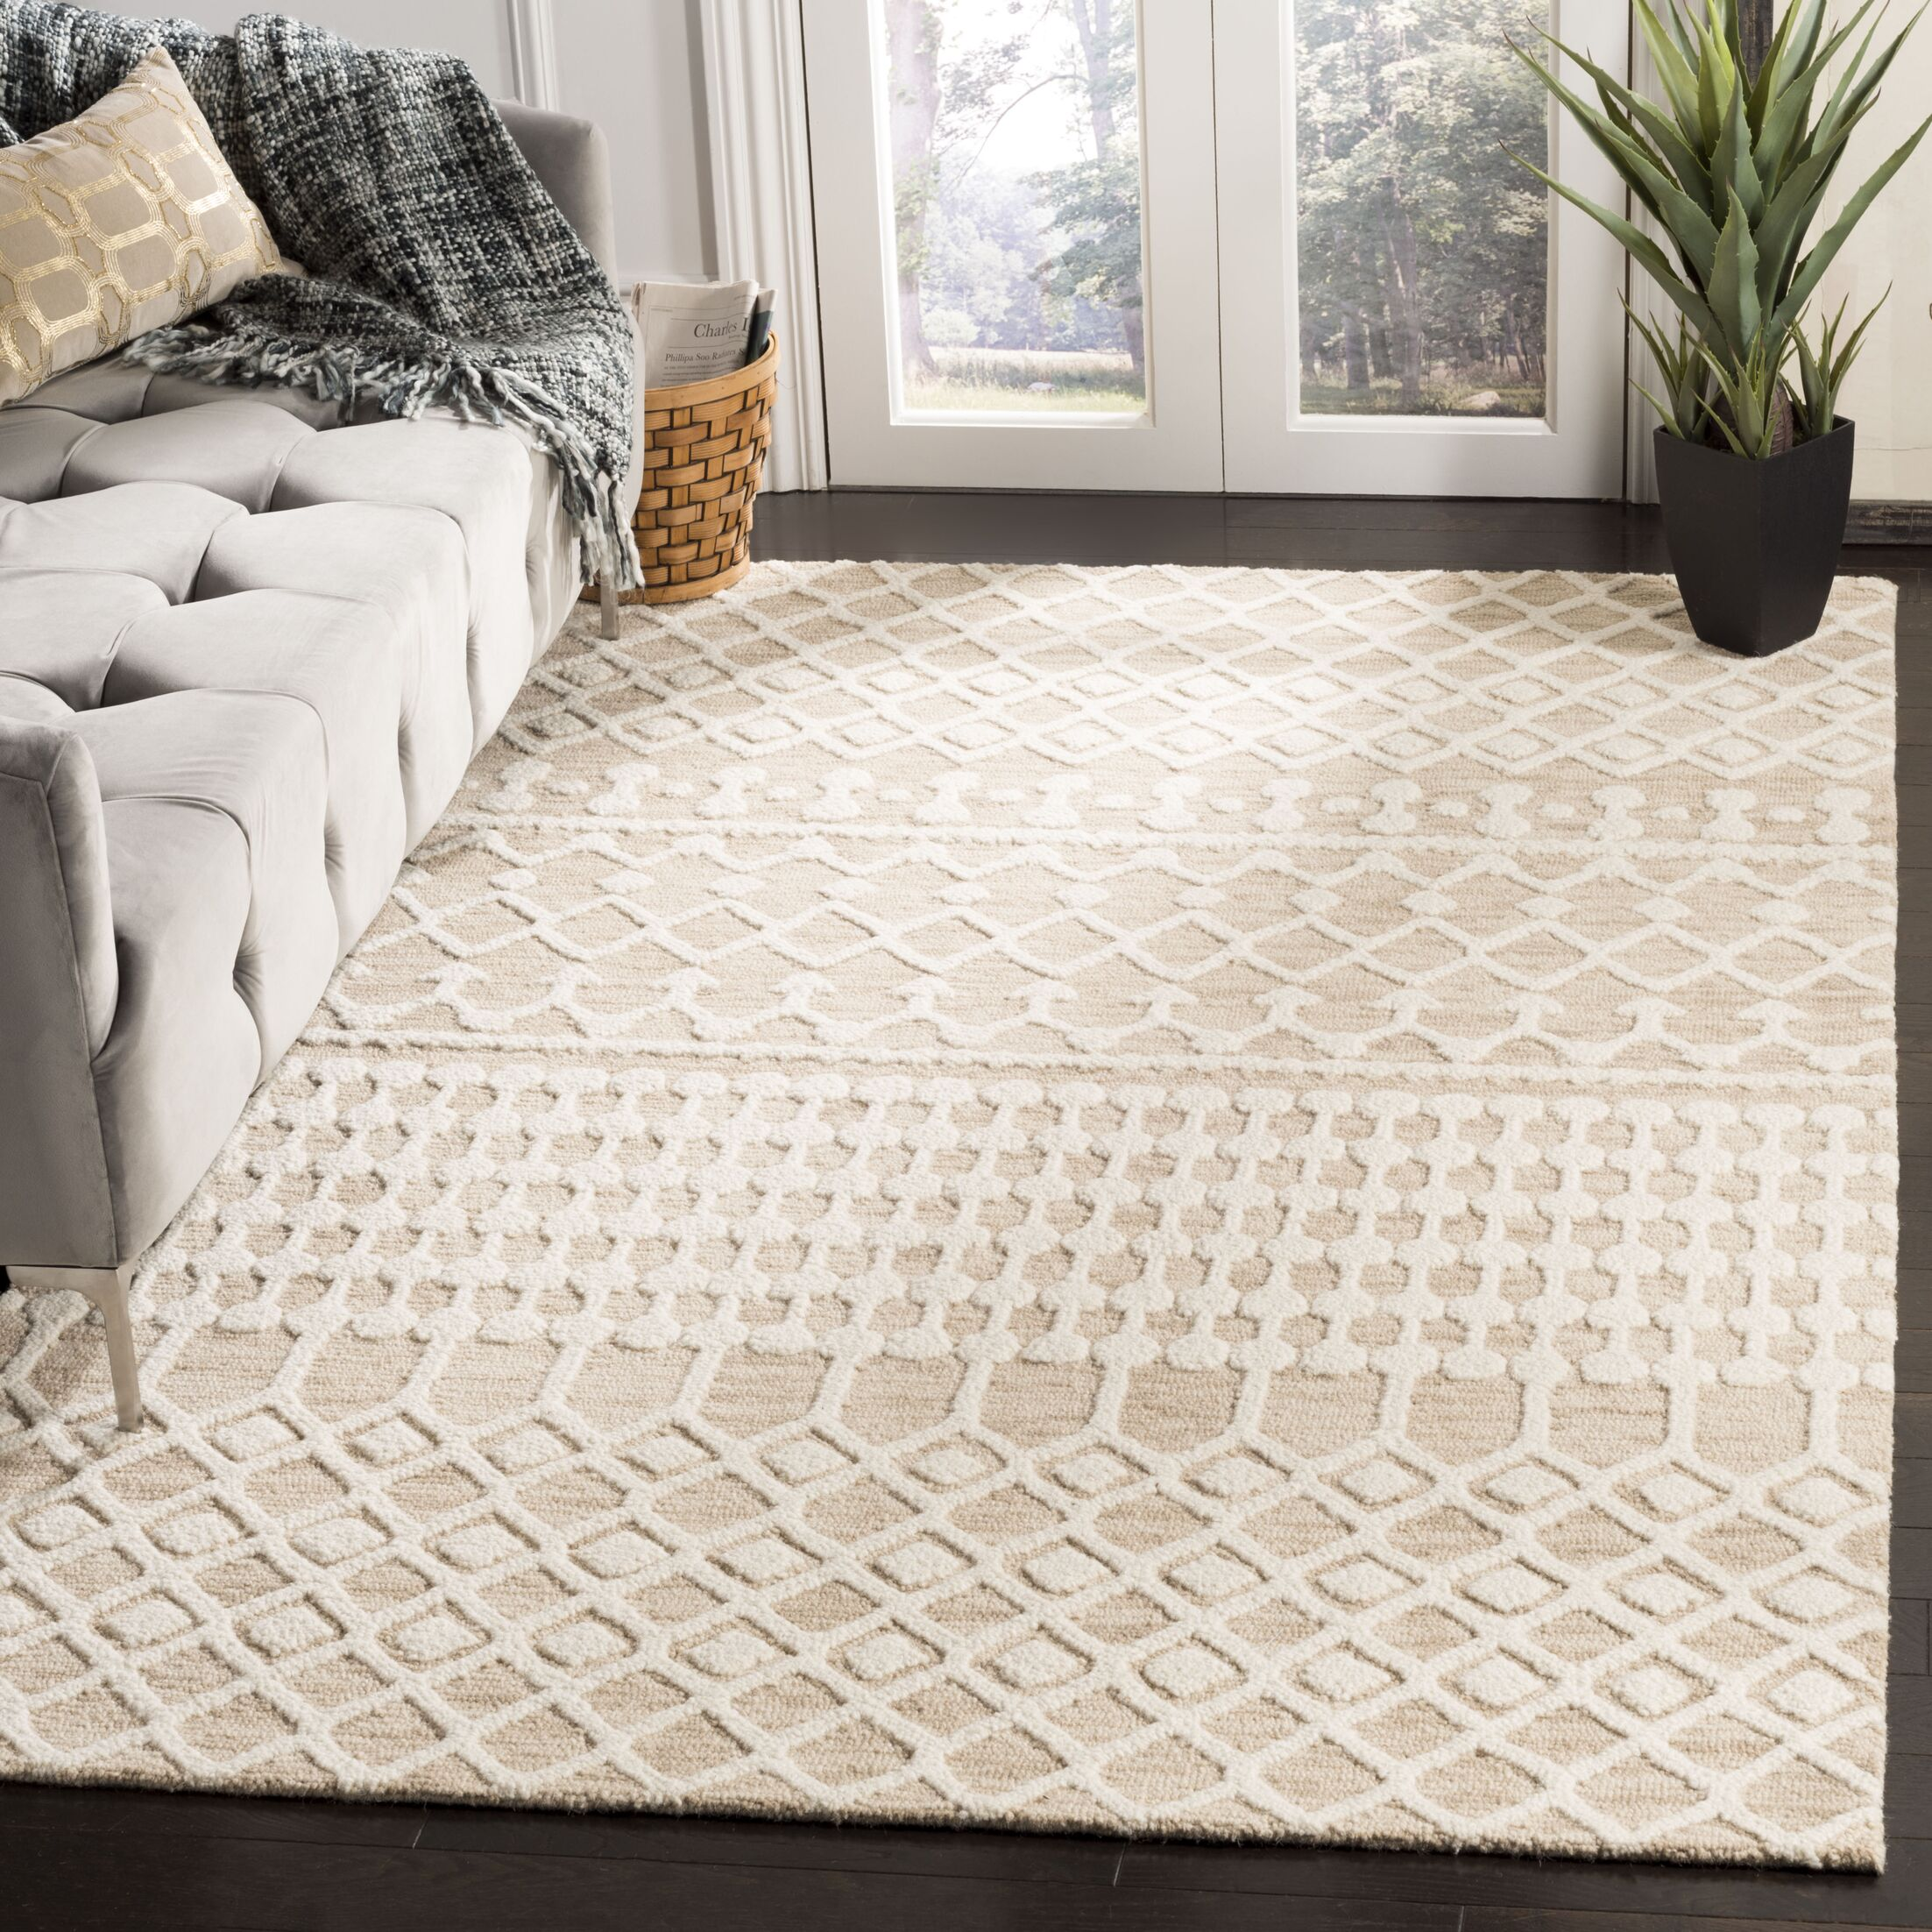 Jeannine Hand-Woven Wool Beige/Ivory Area Rug Rug Size: Rectangular 5' x 8'